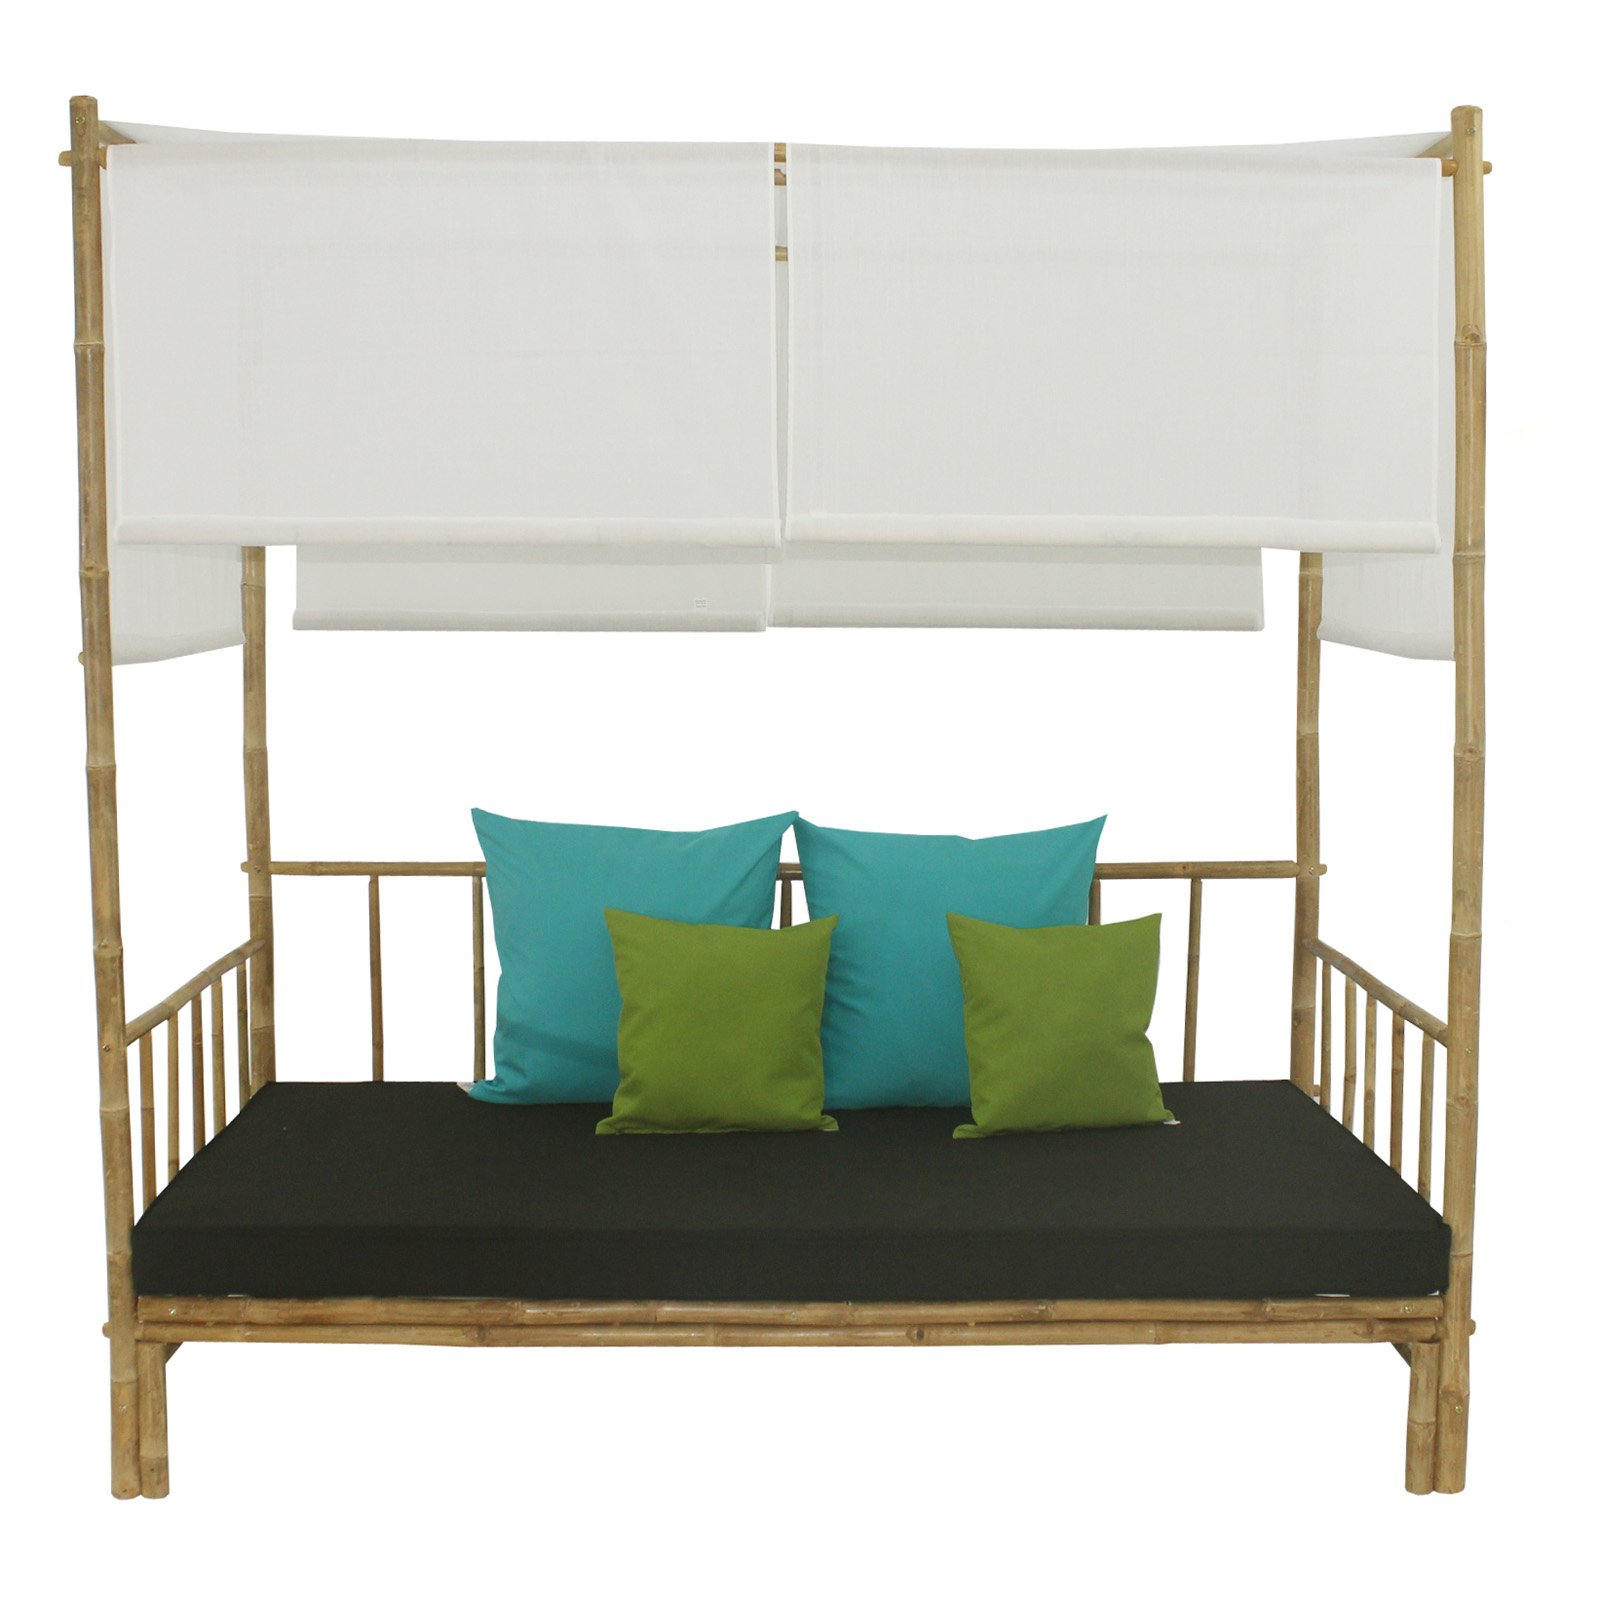 Statra Bamboo Daybed with Canopy Mattress and Throw Pillows